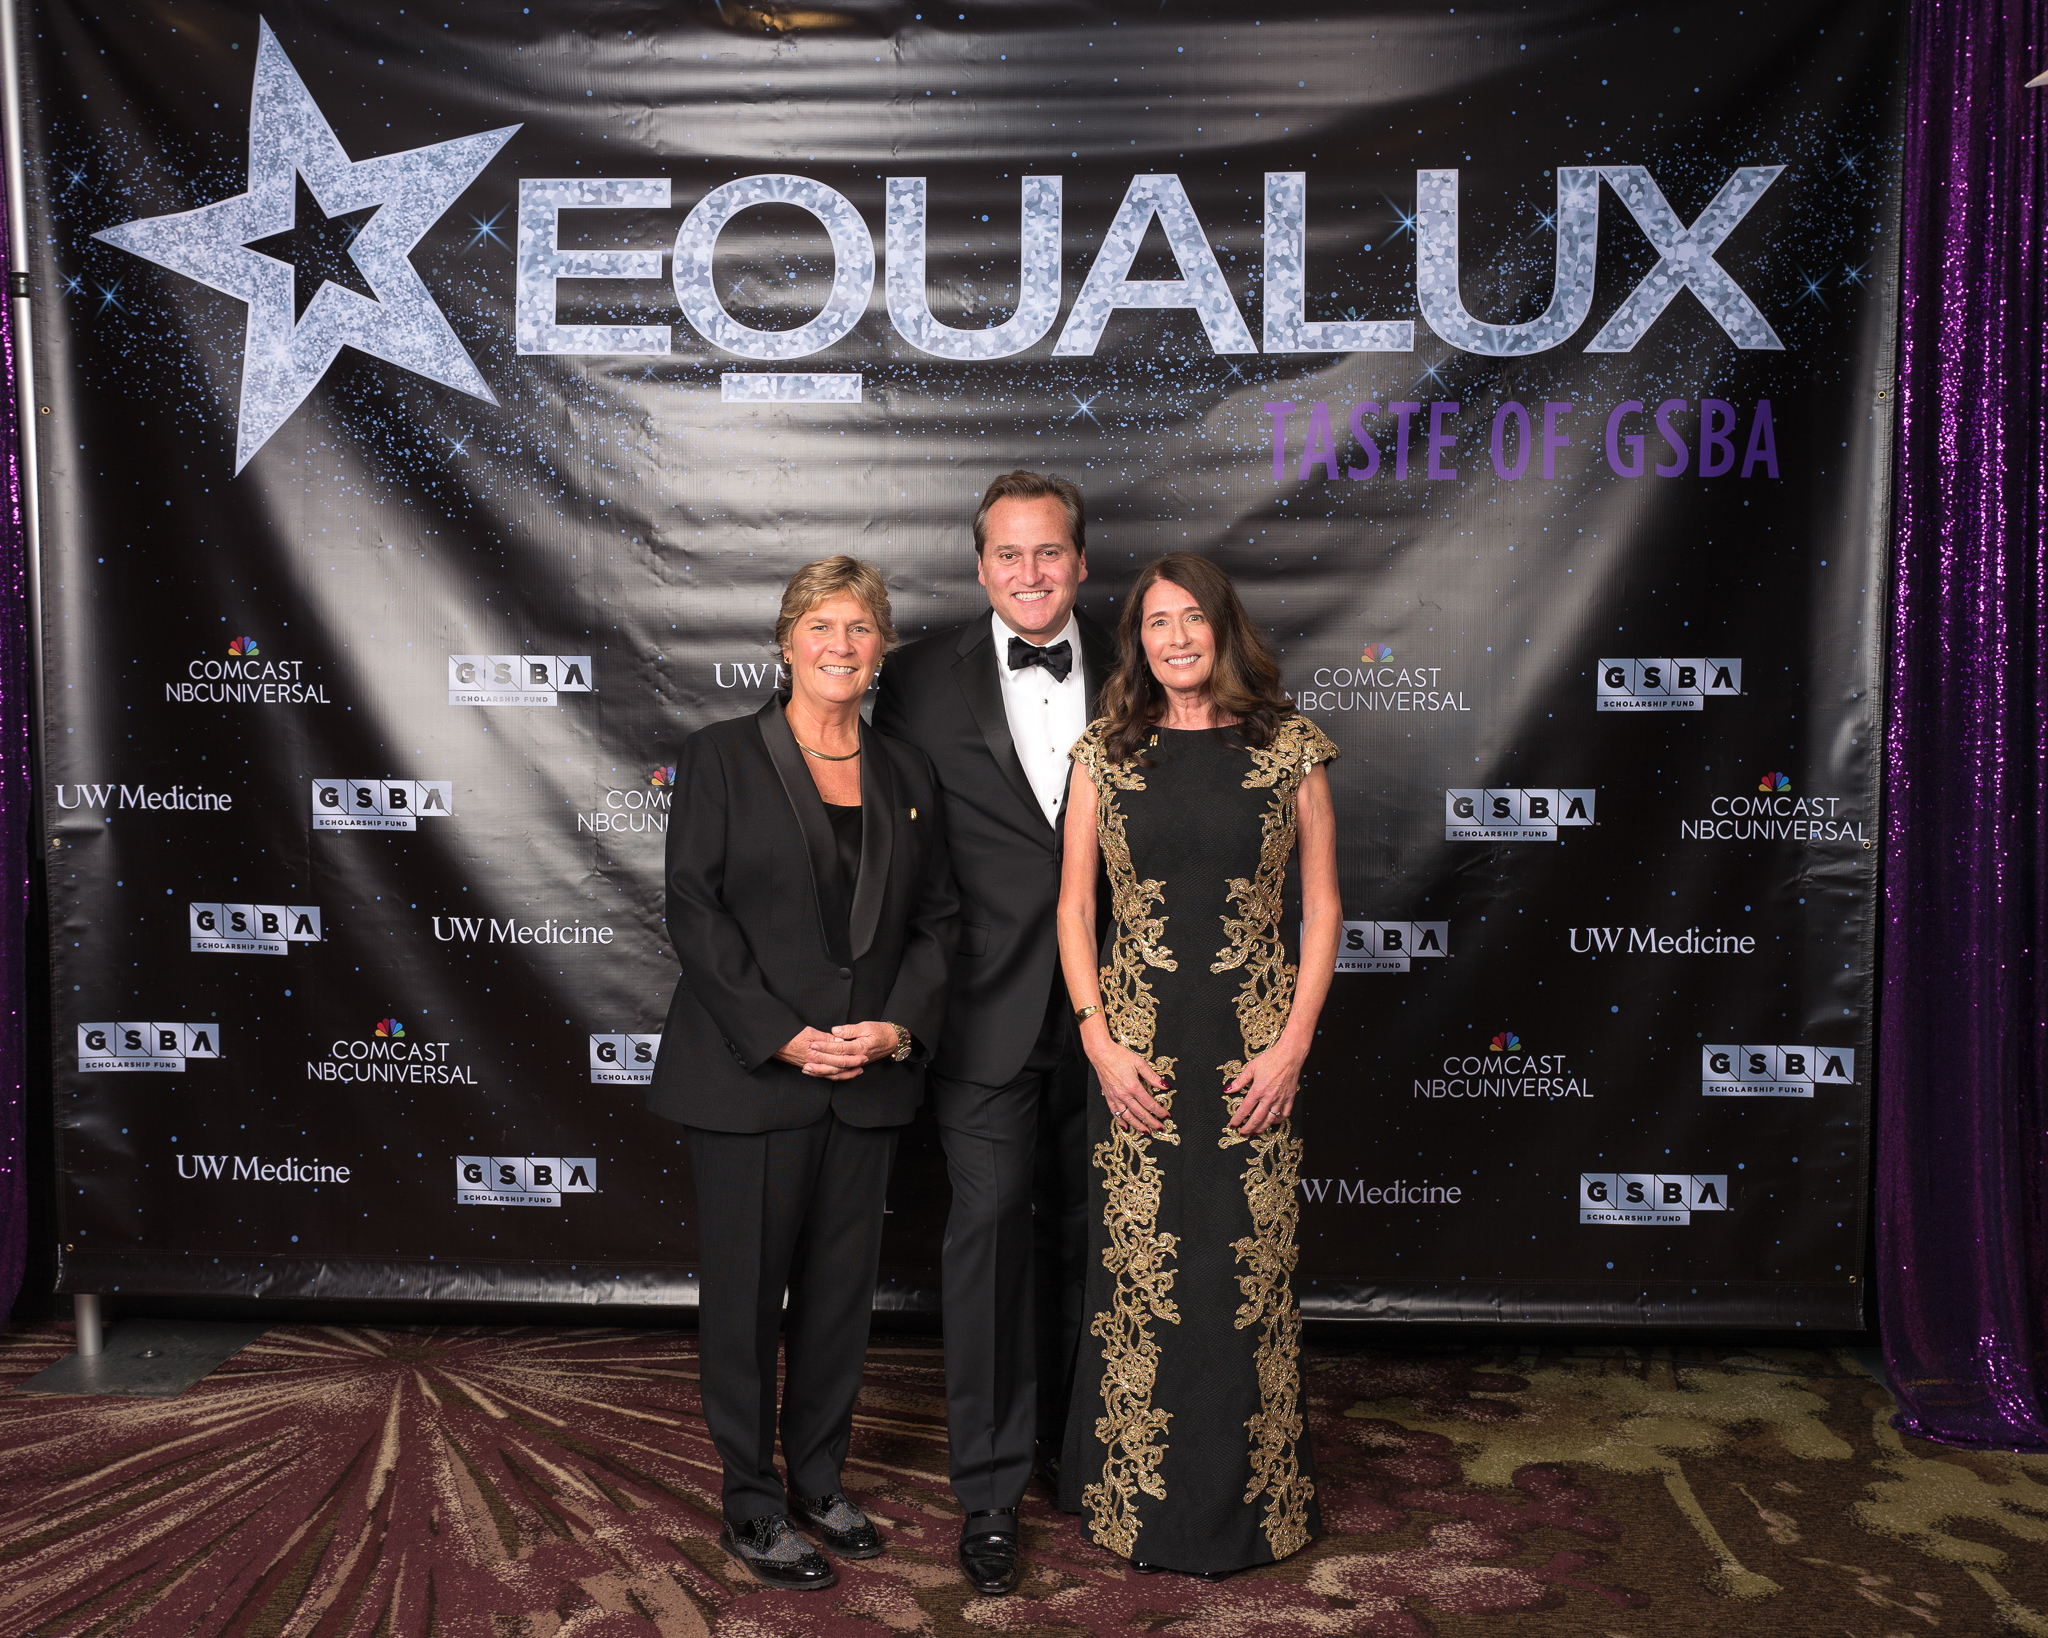 111718_GSBA EQUALUX at The Westin Seattle (Credit- Nate Gowdy)-78.jpg